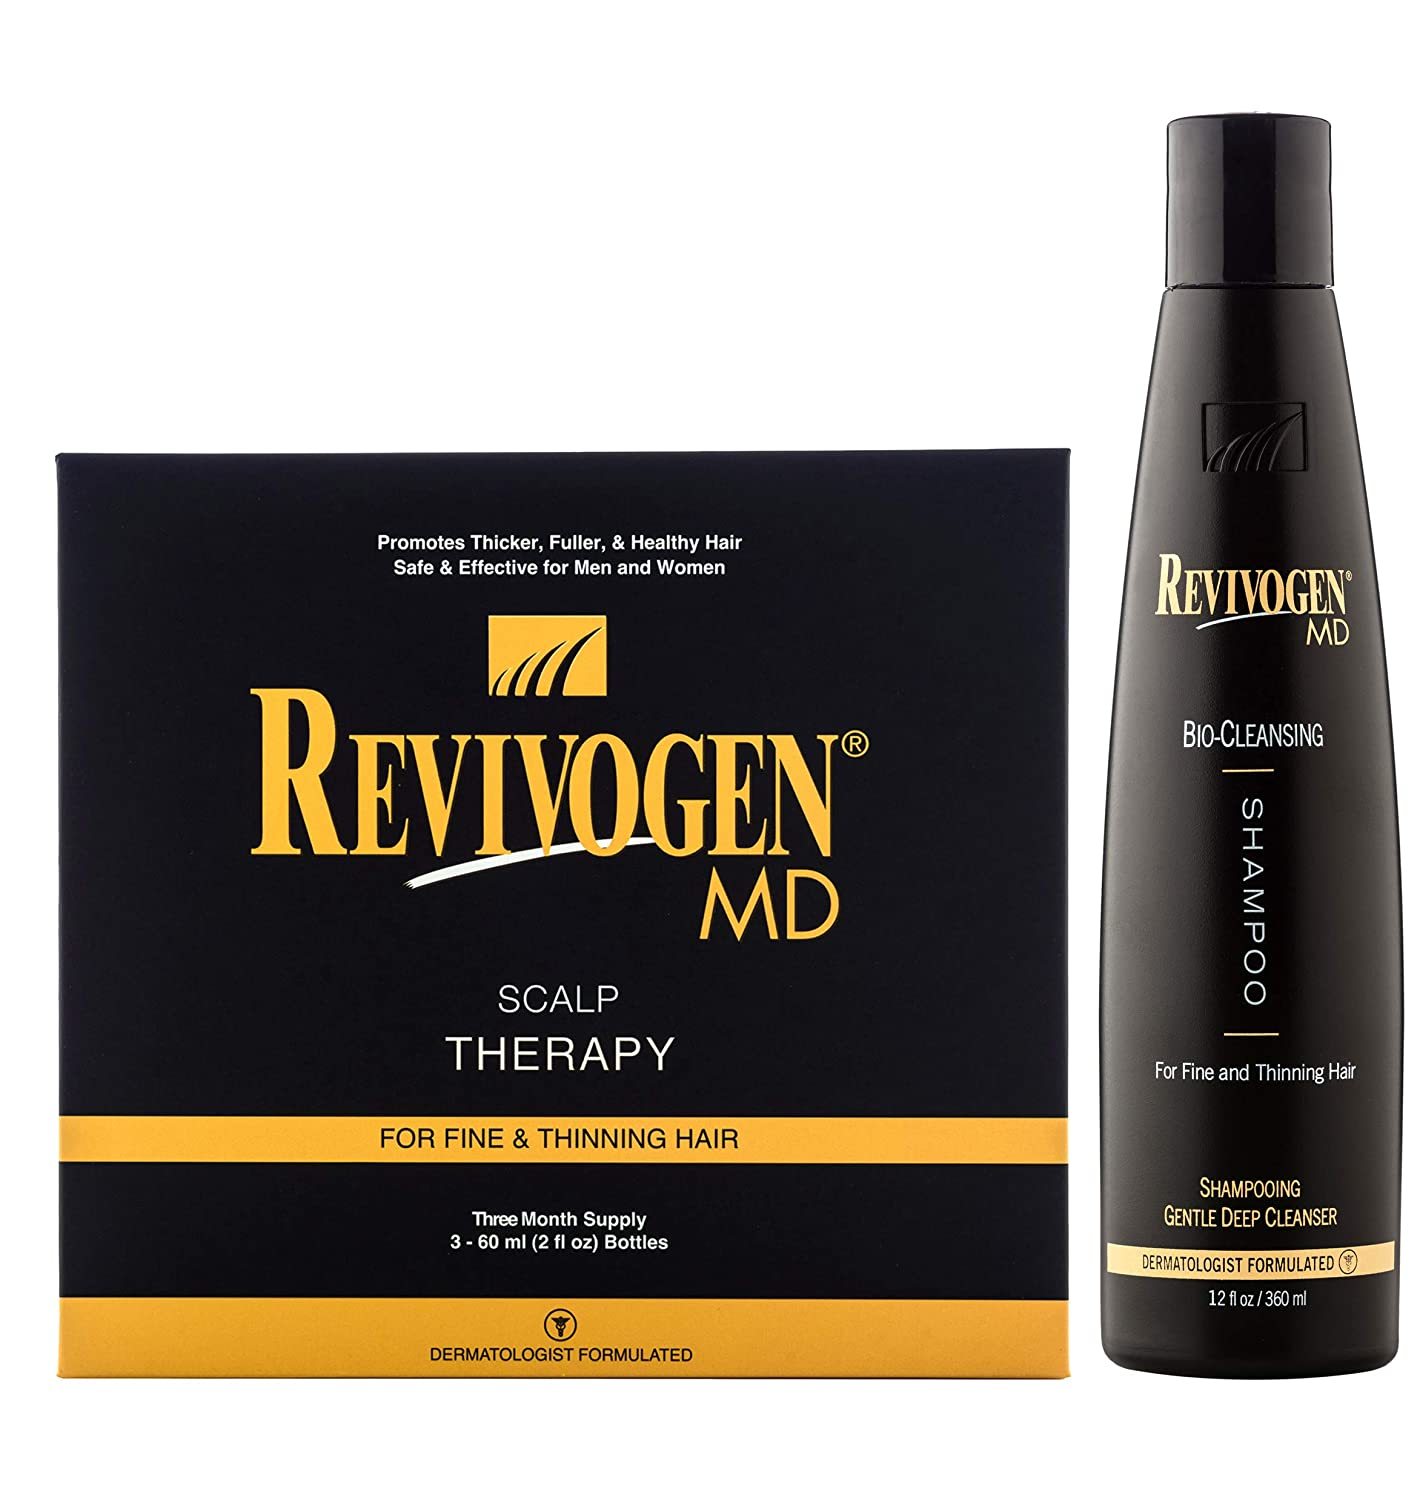 Revivogen MD Keratin Hair Building Fibers, Medium Brown, Unscented, 0.9 Oz 833753001037